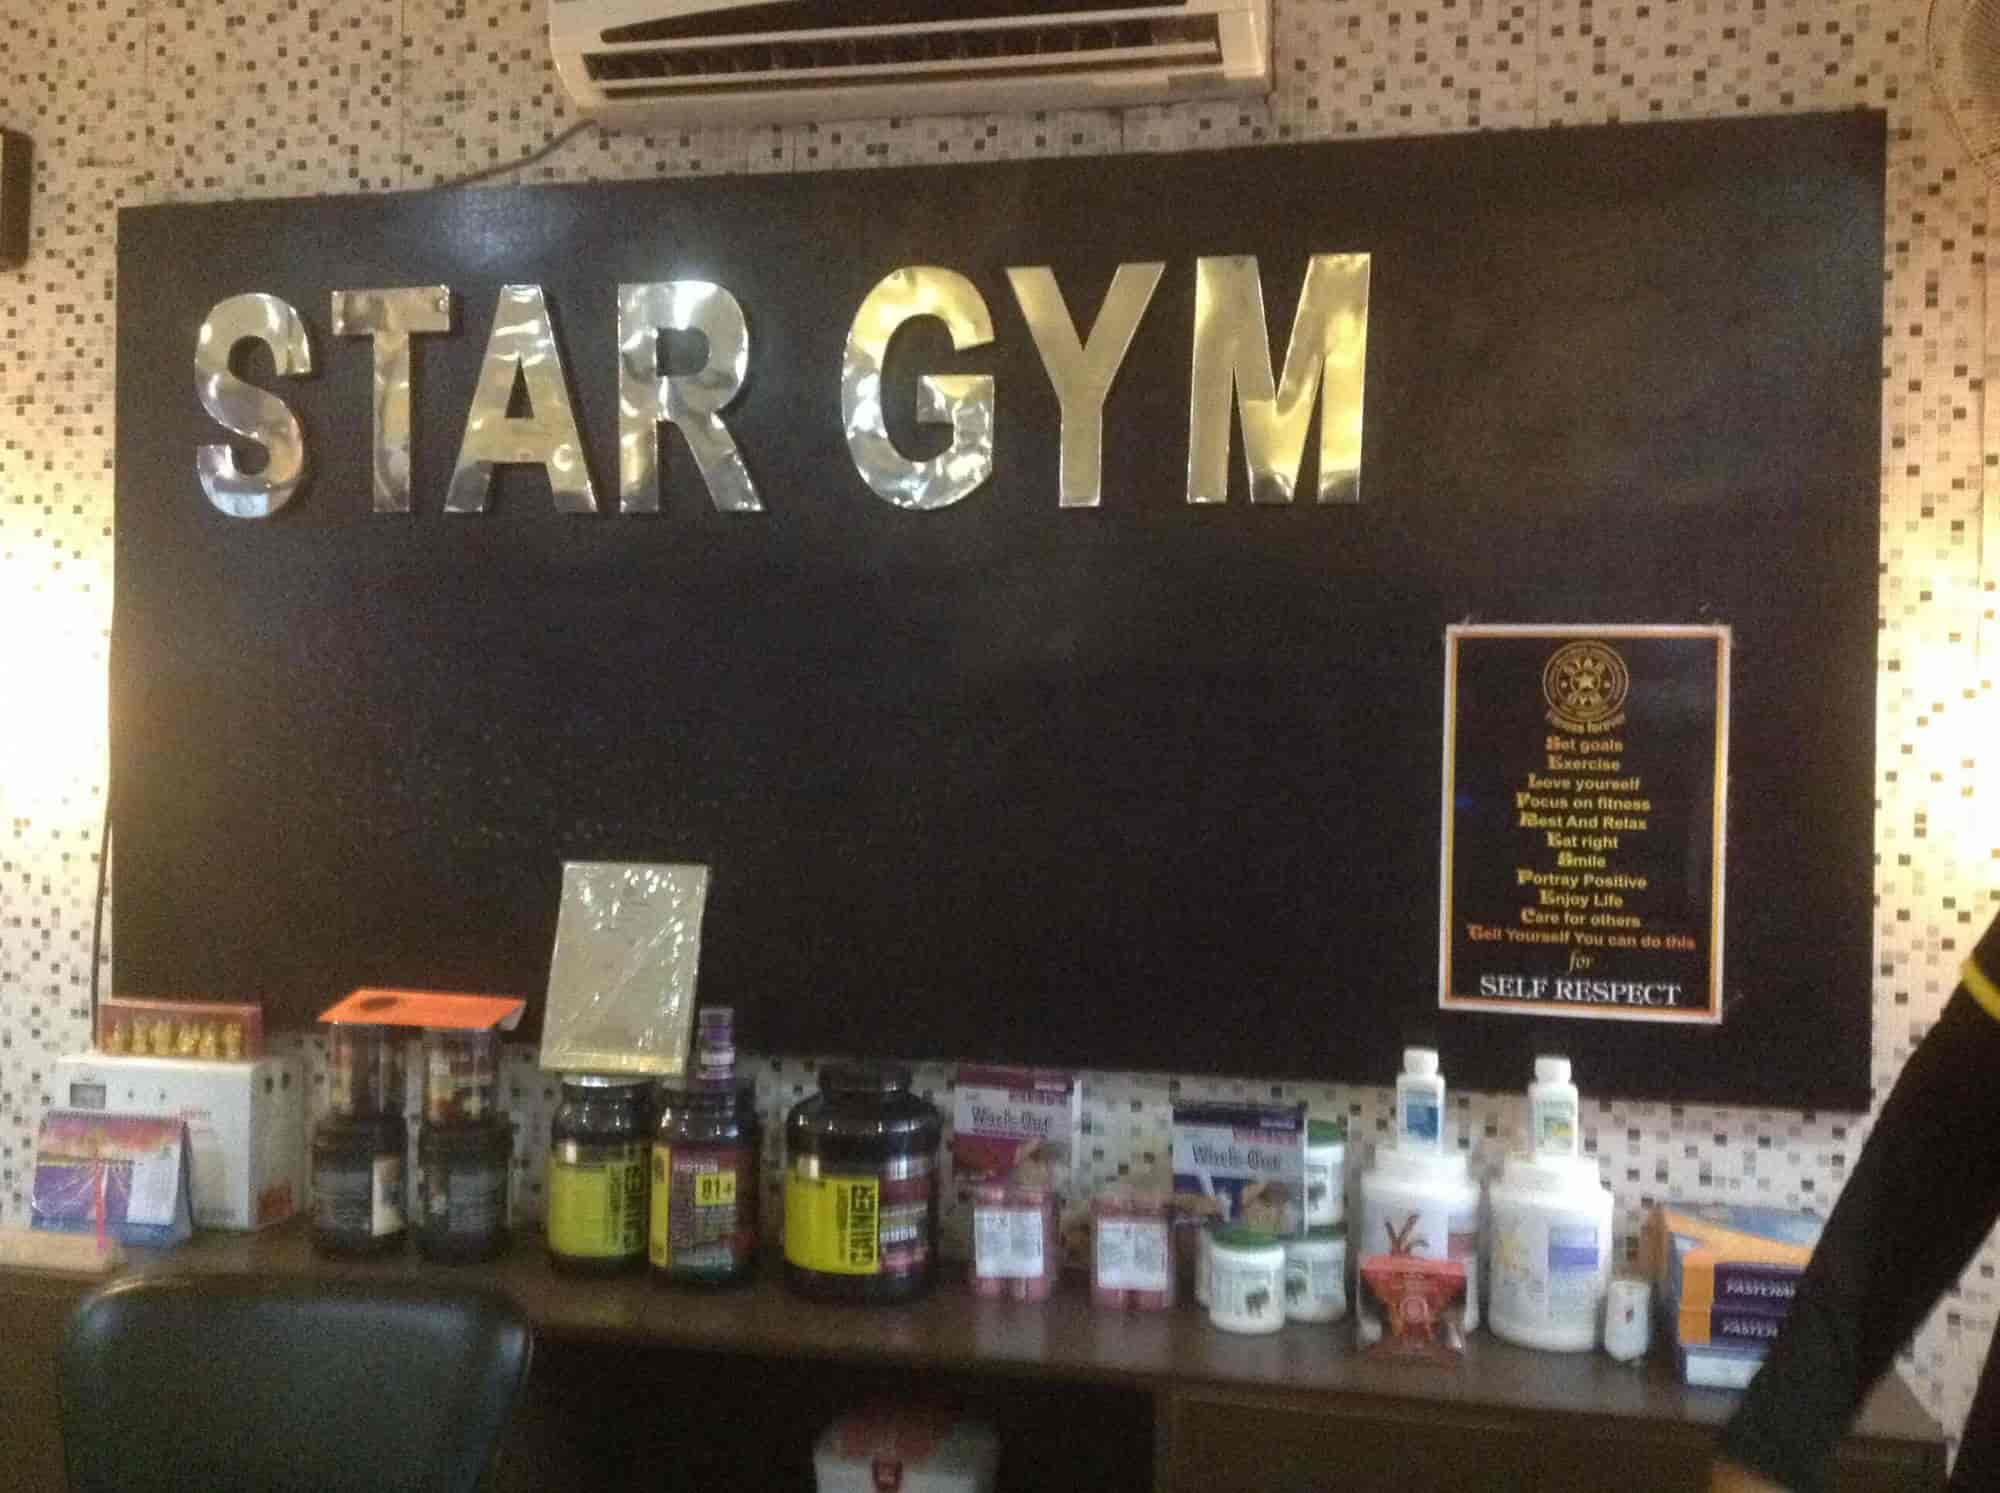 Star Gym, JANKIPURAM EXTENSION - Gyms in Lucknow - Justdial